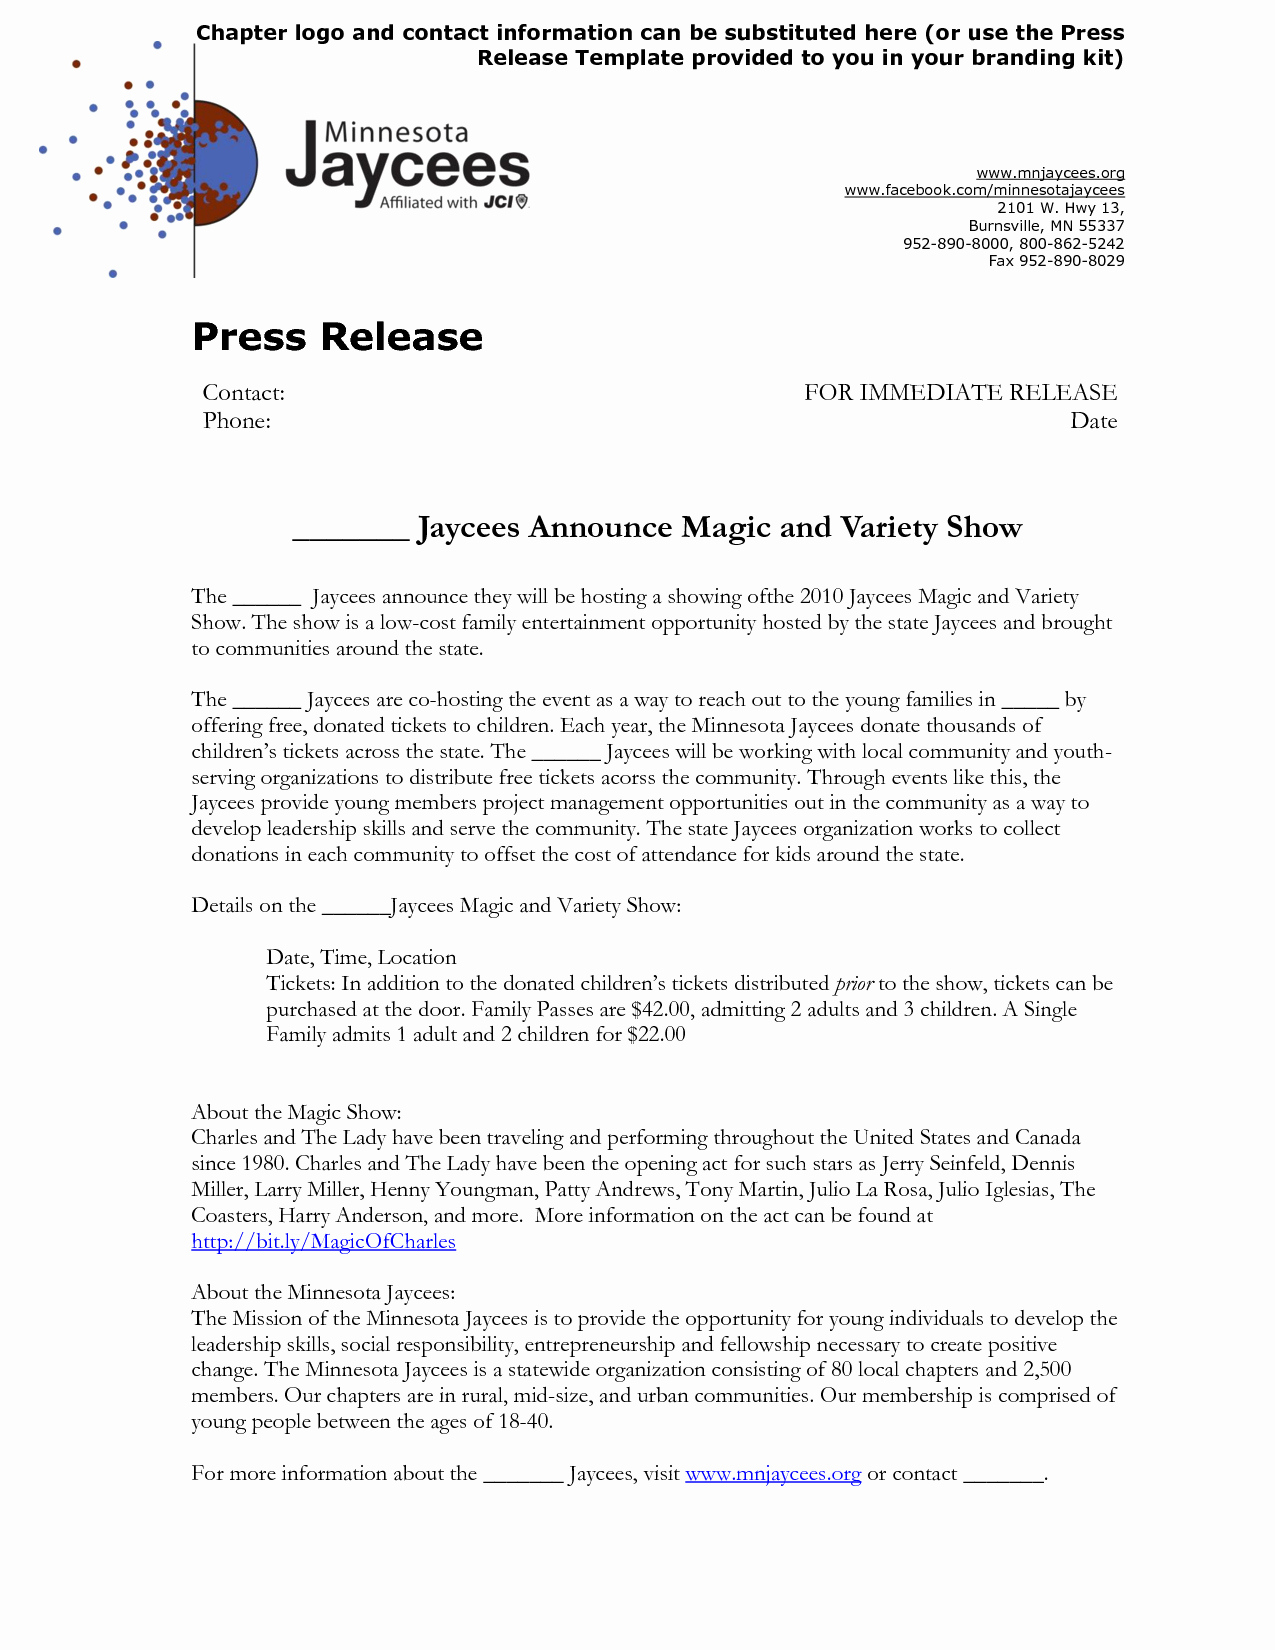 10 Best Of Press Release Template Word Political